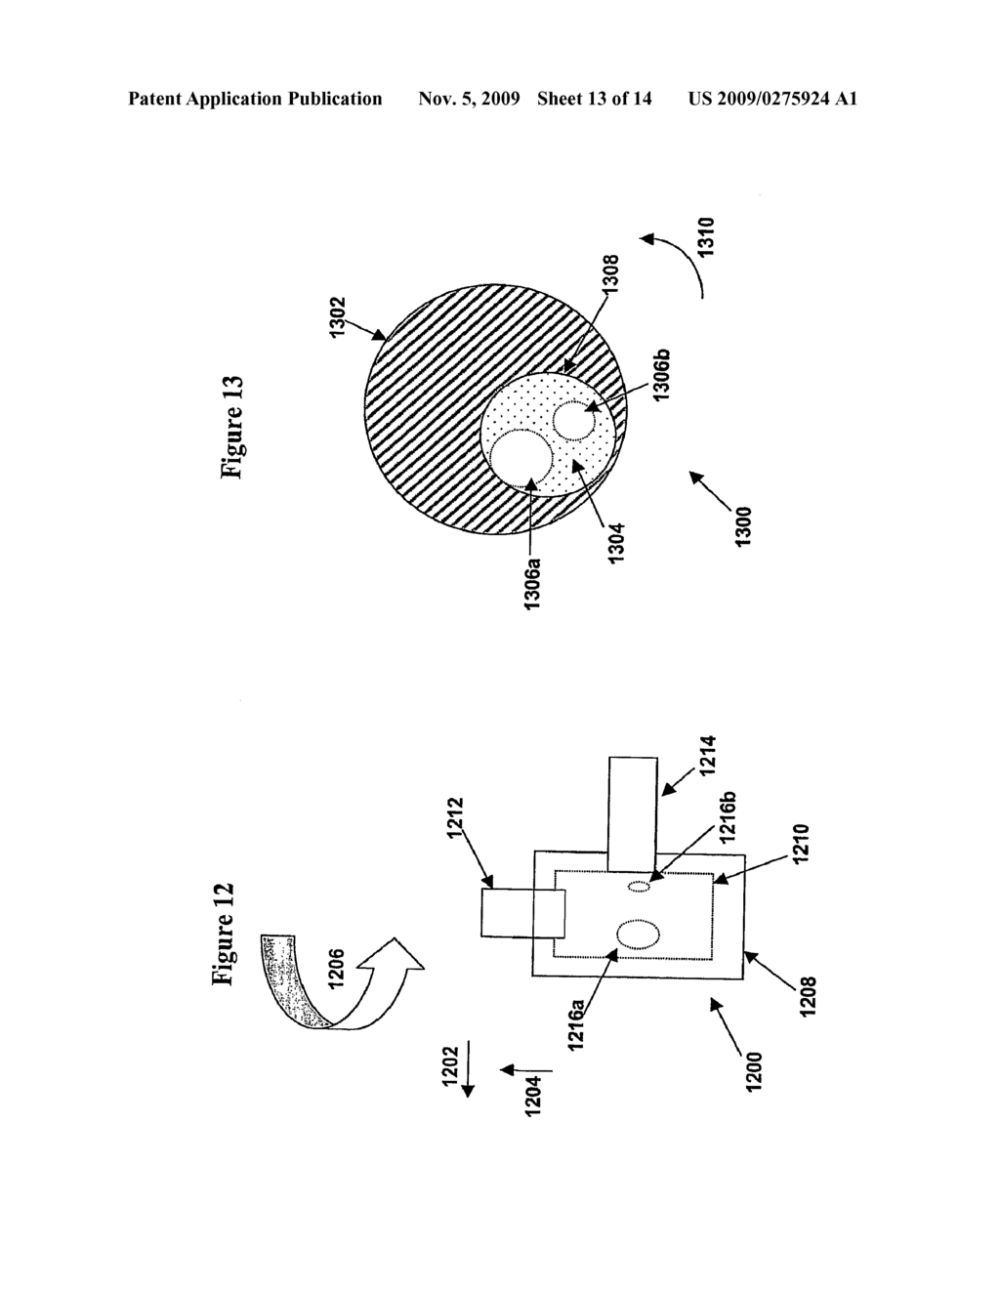 medium resolution of systems and methods for monitoring and controlling internal pressure of an eye or body part diagram schematic and image 14